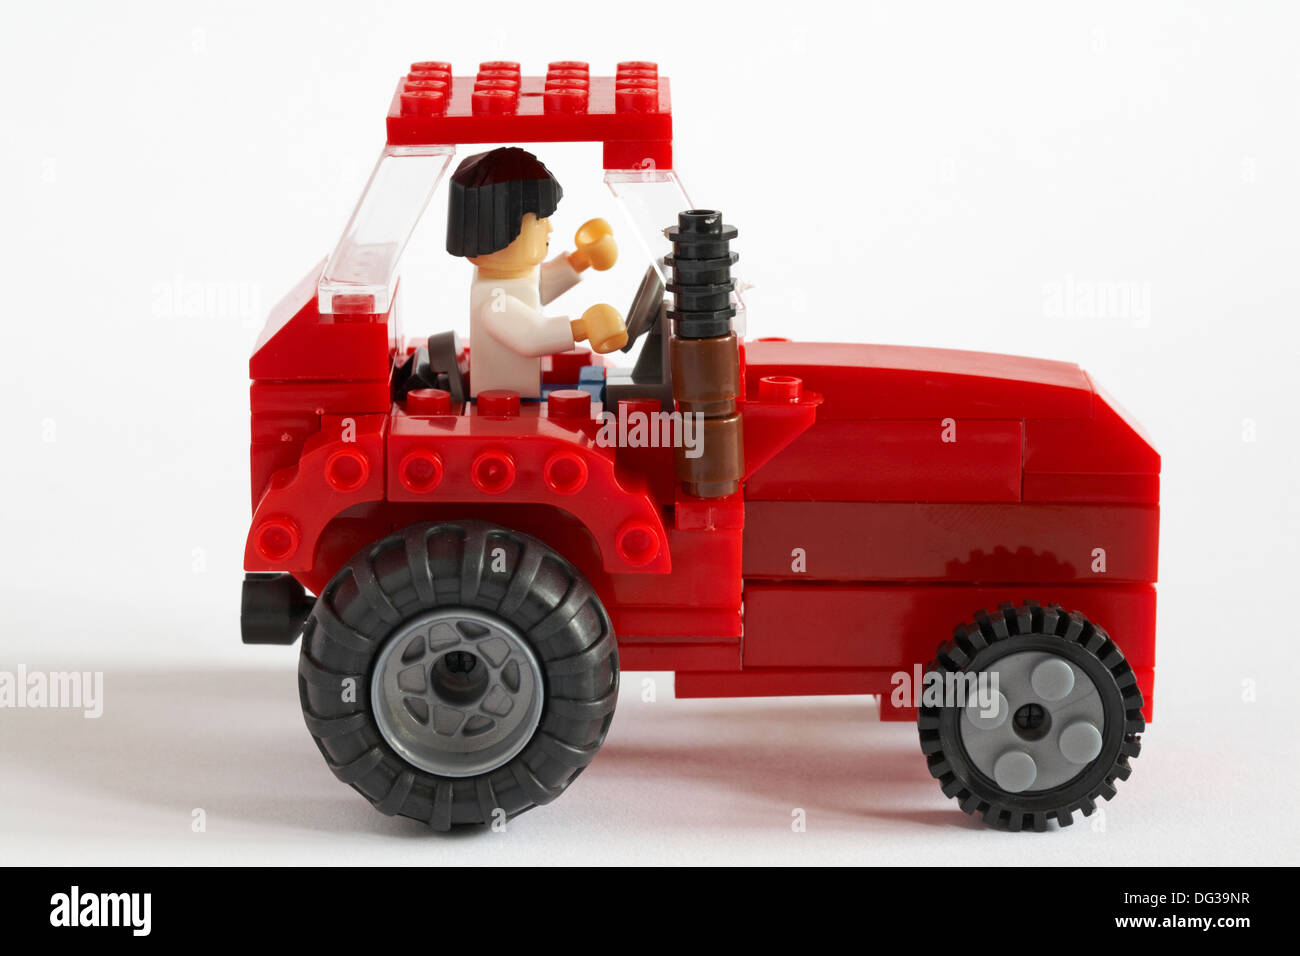 Tractor made from Wilko blox building blocks isolated on white background - Stock Image